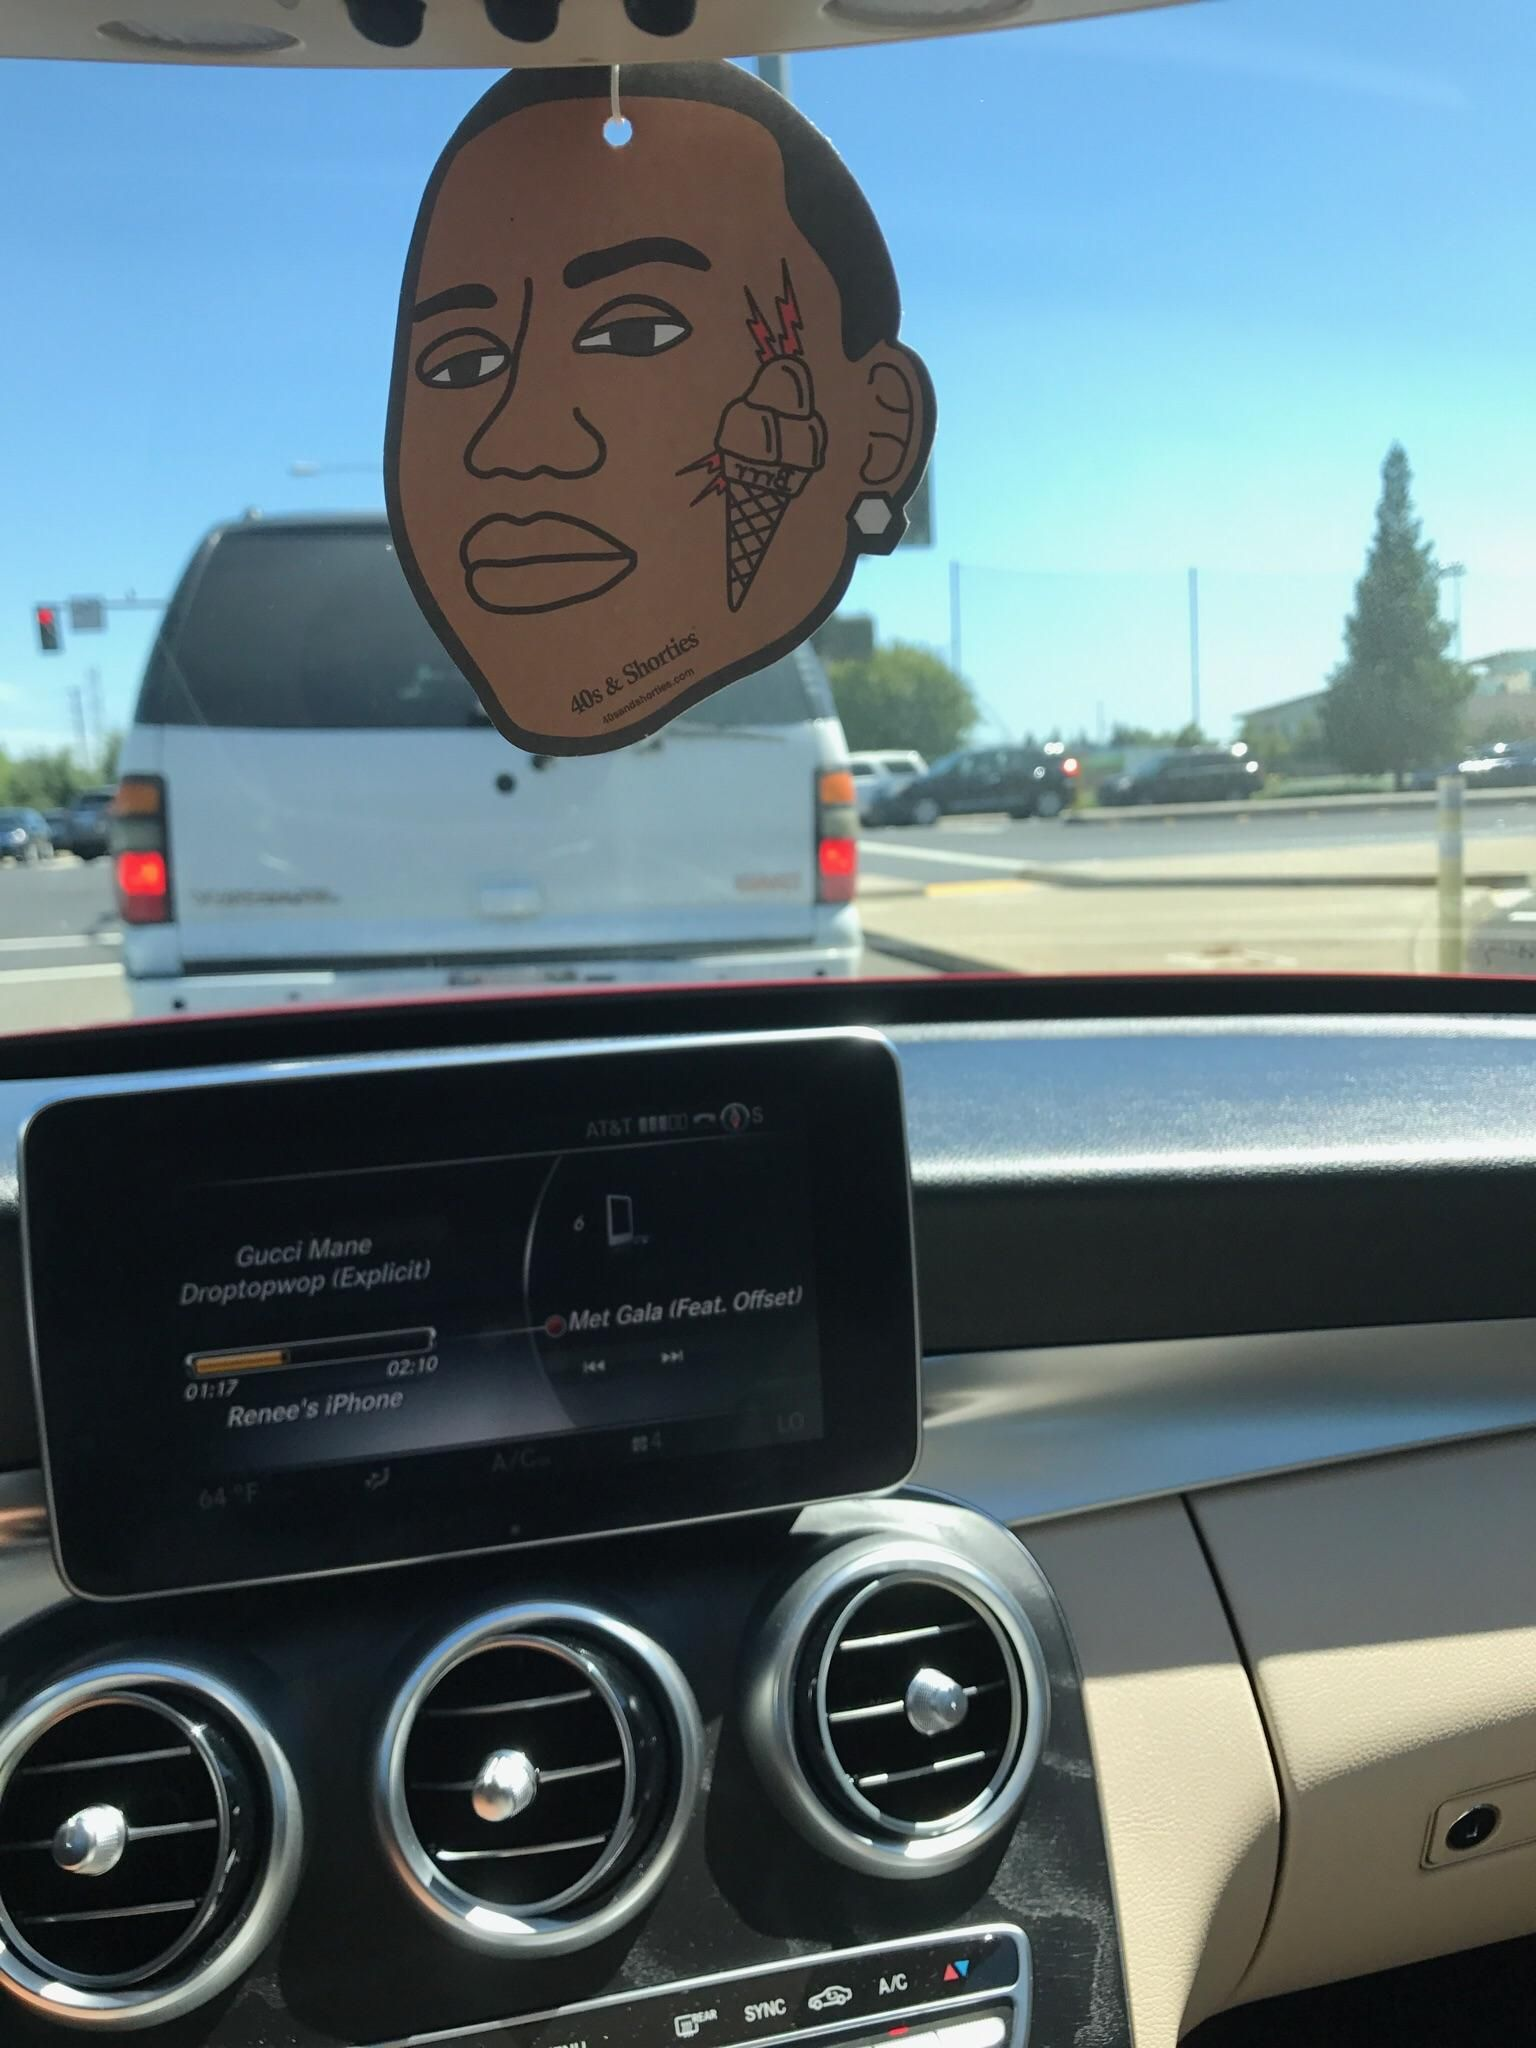 My mom\'s new Gucci Mane air freshener - Aromeco Air Freshener Car ...